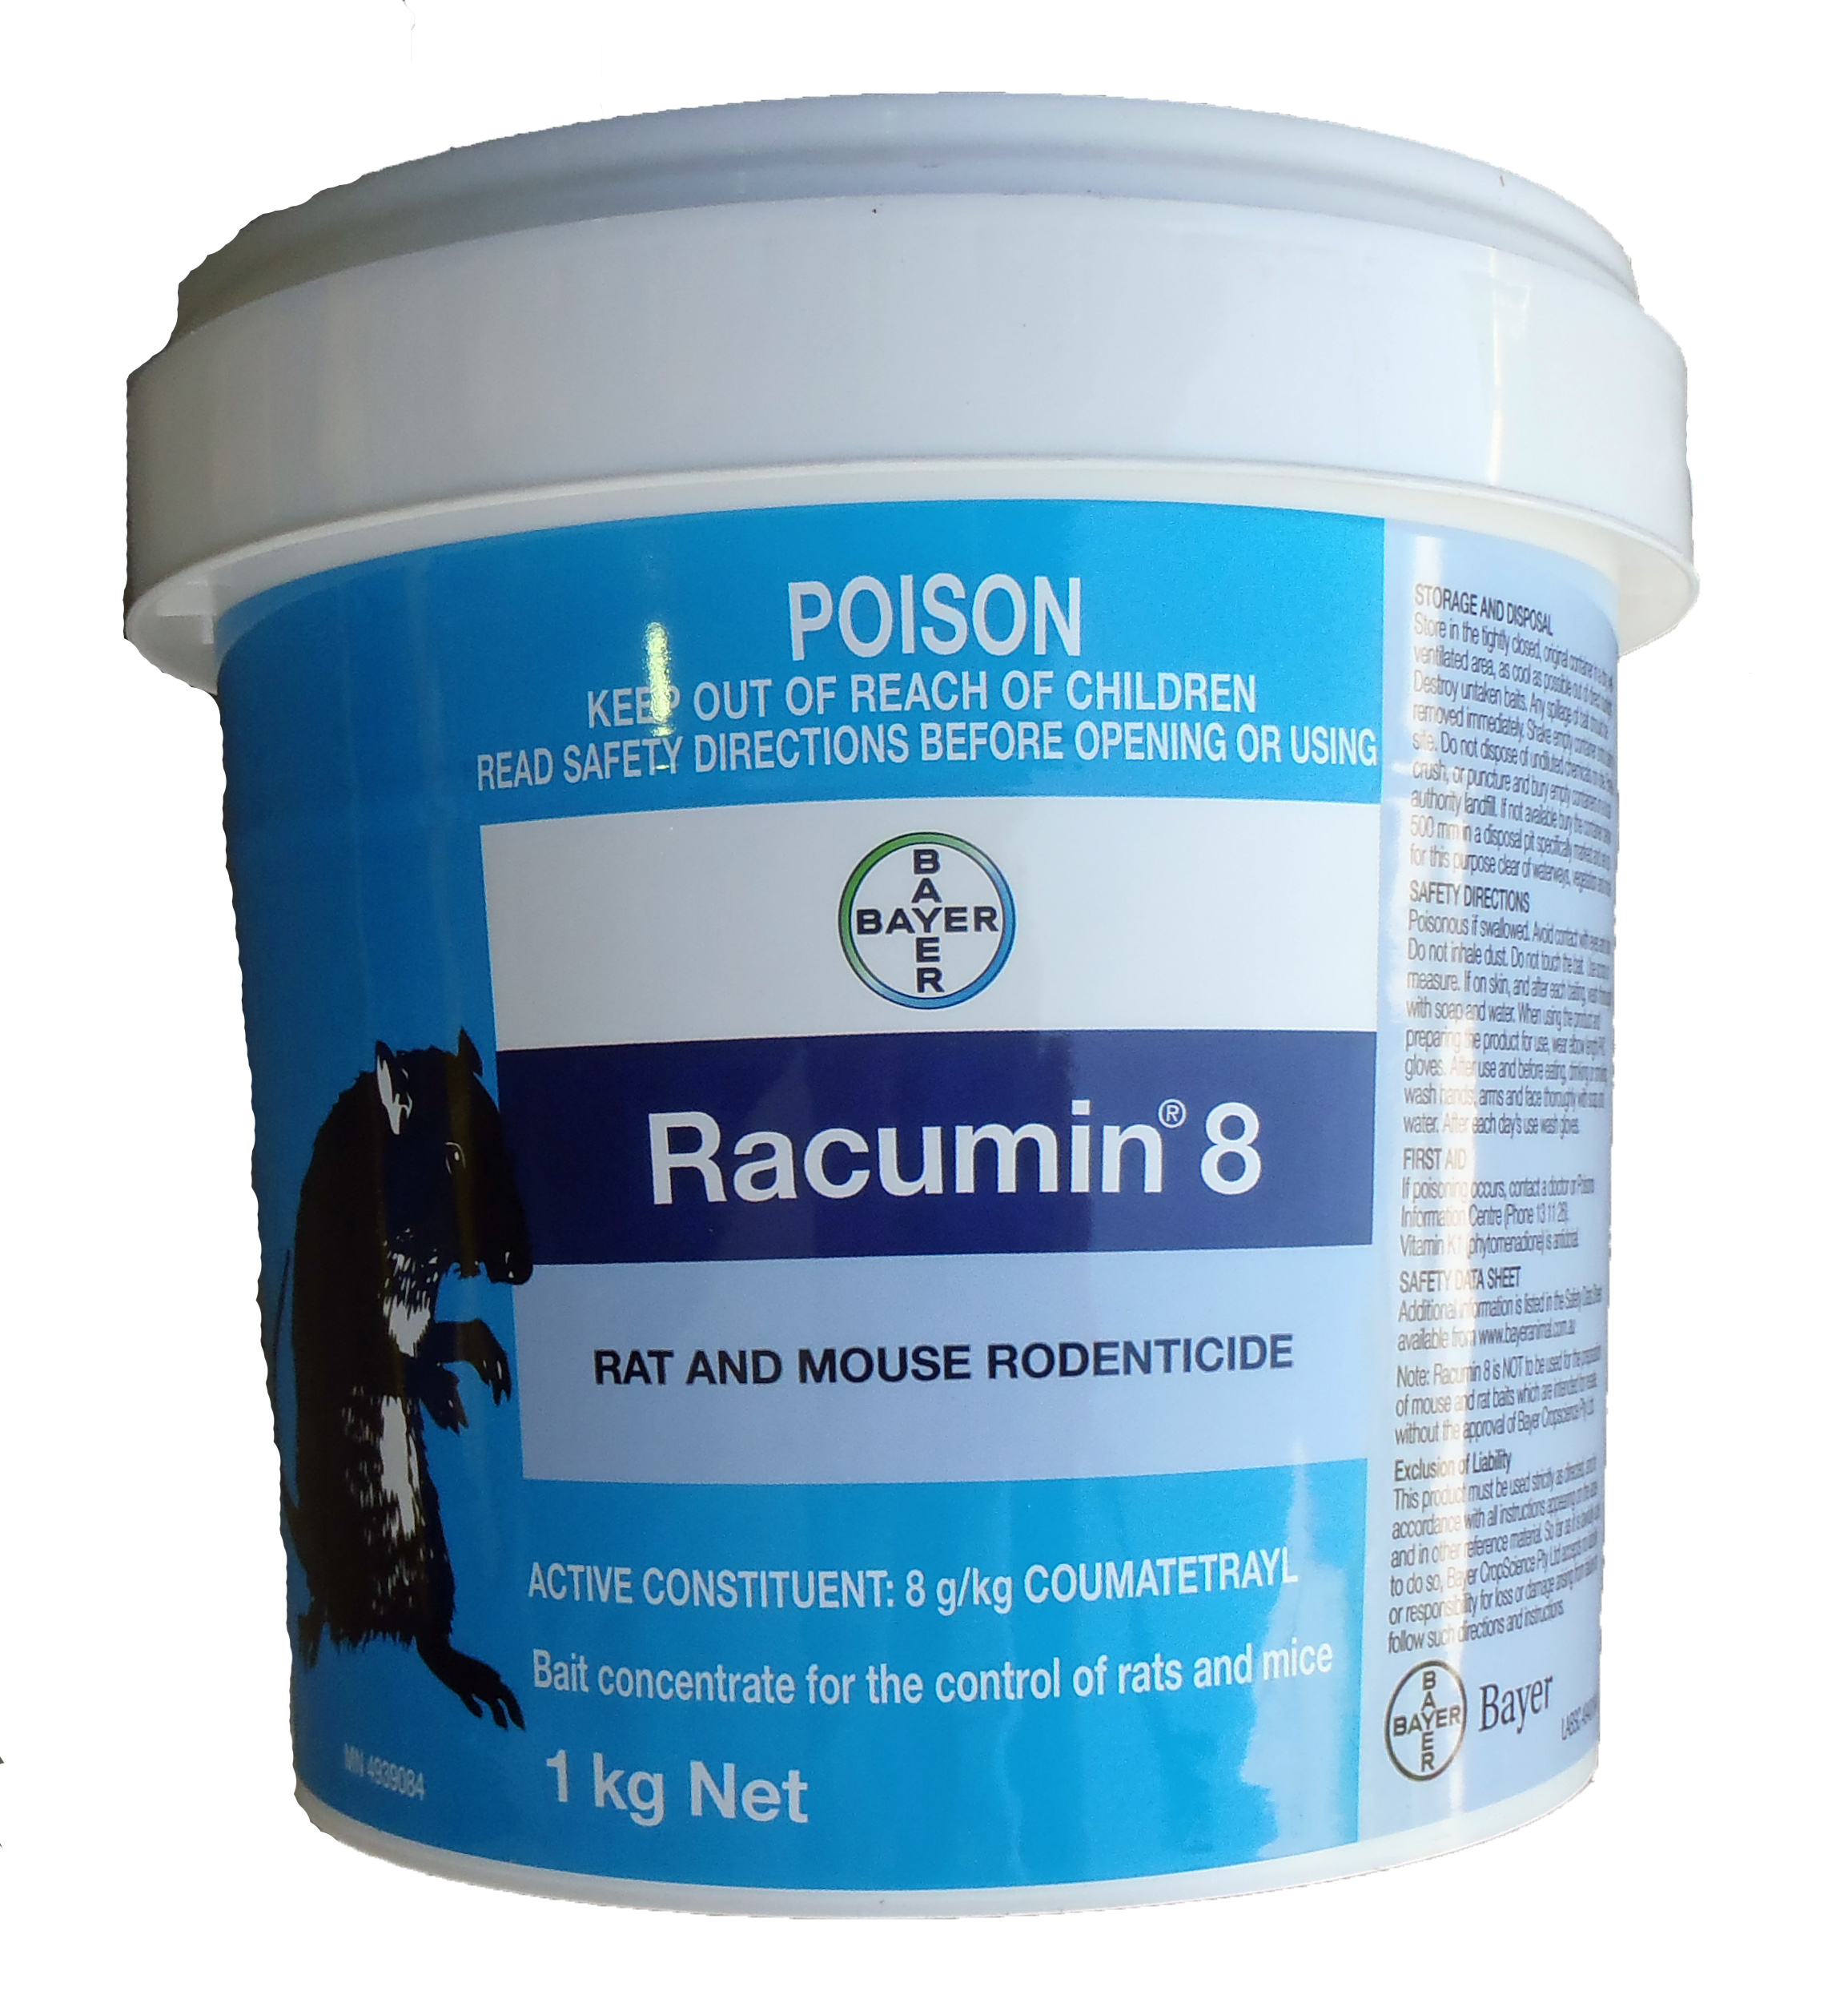 Watch in addition Refinery further plete Wbc Hive in addition Study And Analysis Of Storage Tank Hazards And Its Mitigation Measures Using Bowtie Diagram likewise Racumin 8 Rat And Mouse Rodenticide Powder 1kg. on farm fuel tanks